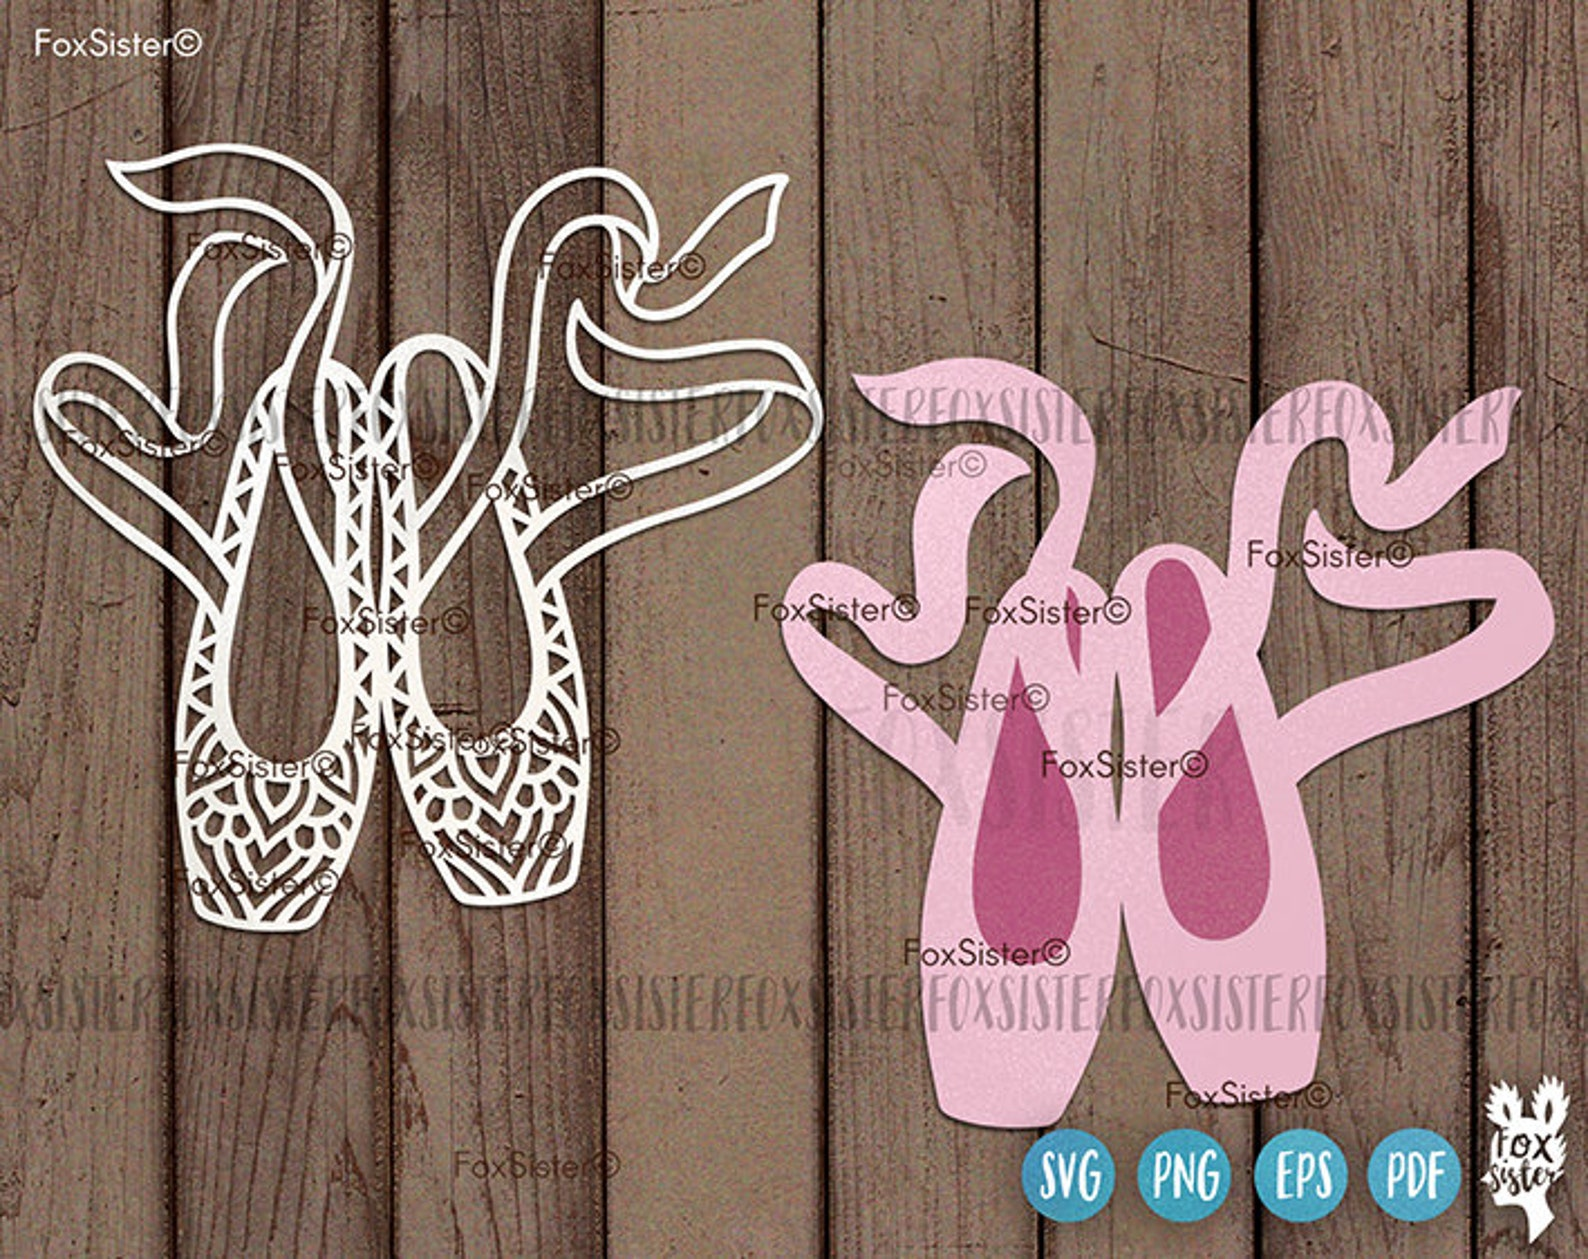 ballet shoes svg cut file, ballerina svg, ballet svg vector art, ballet dancer svg, dance svg png cutting files for cricut and s